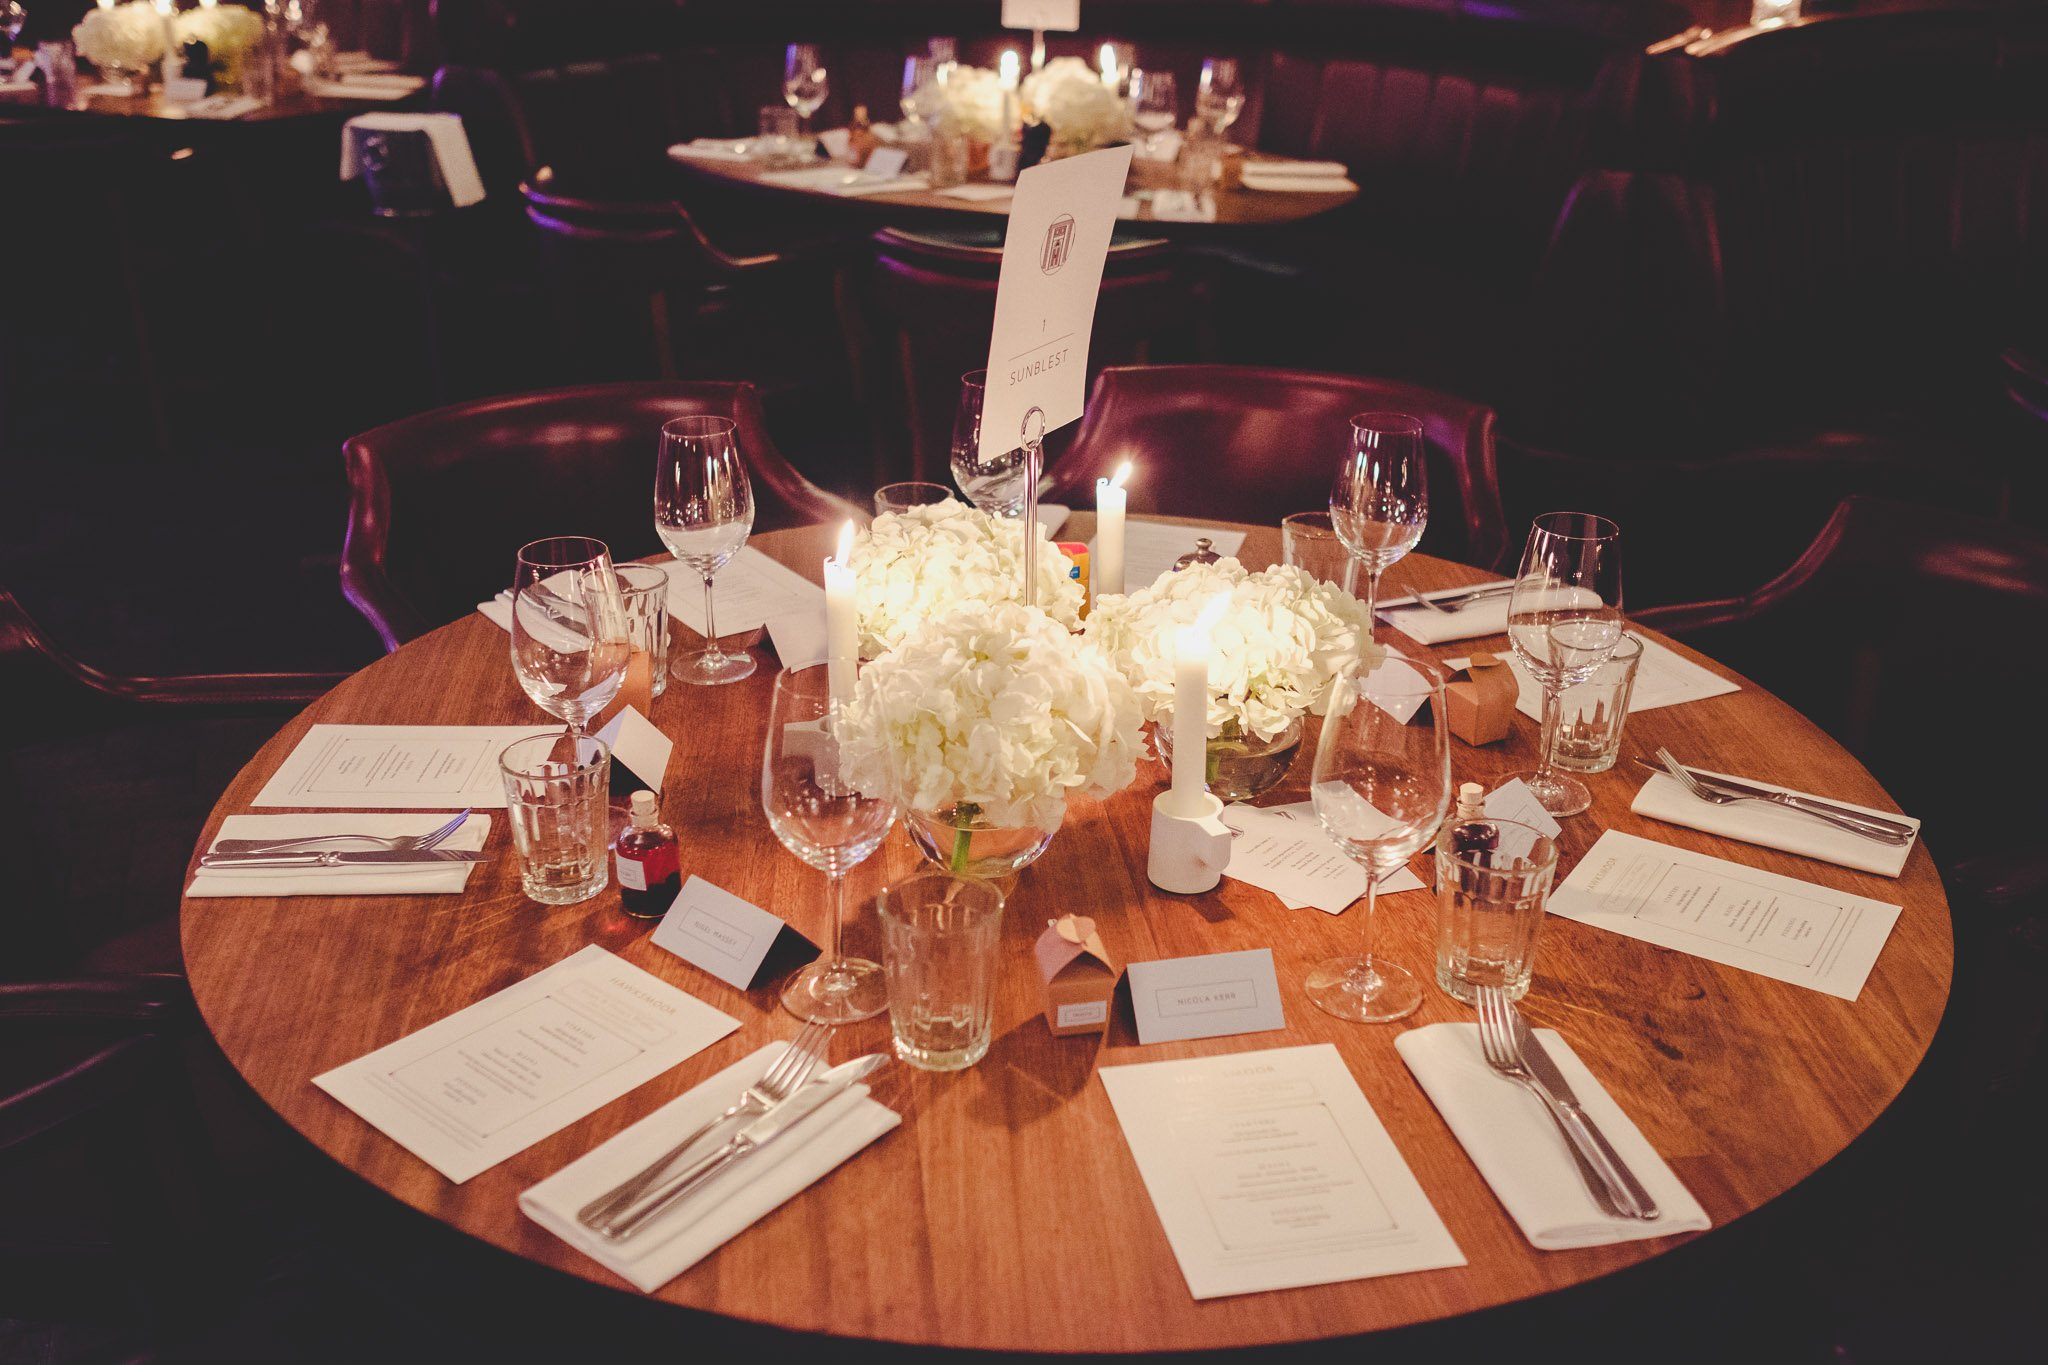 Wedding table decoration at Hawksmoor Steakhouse in Guildhall London